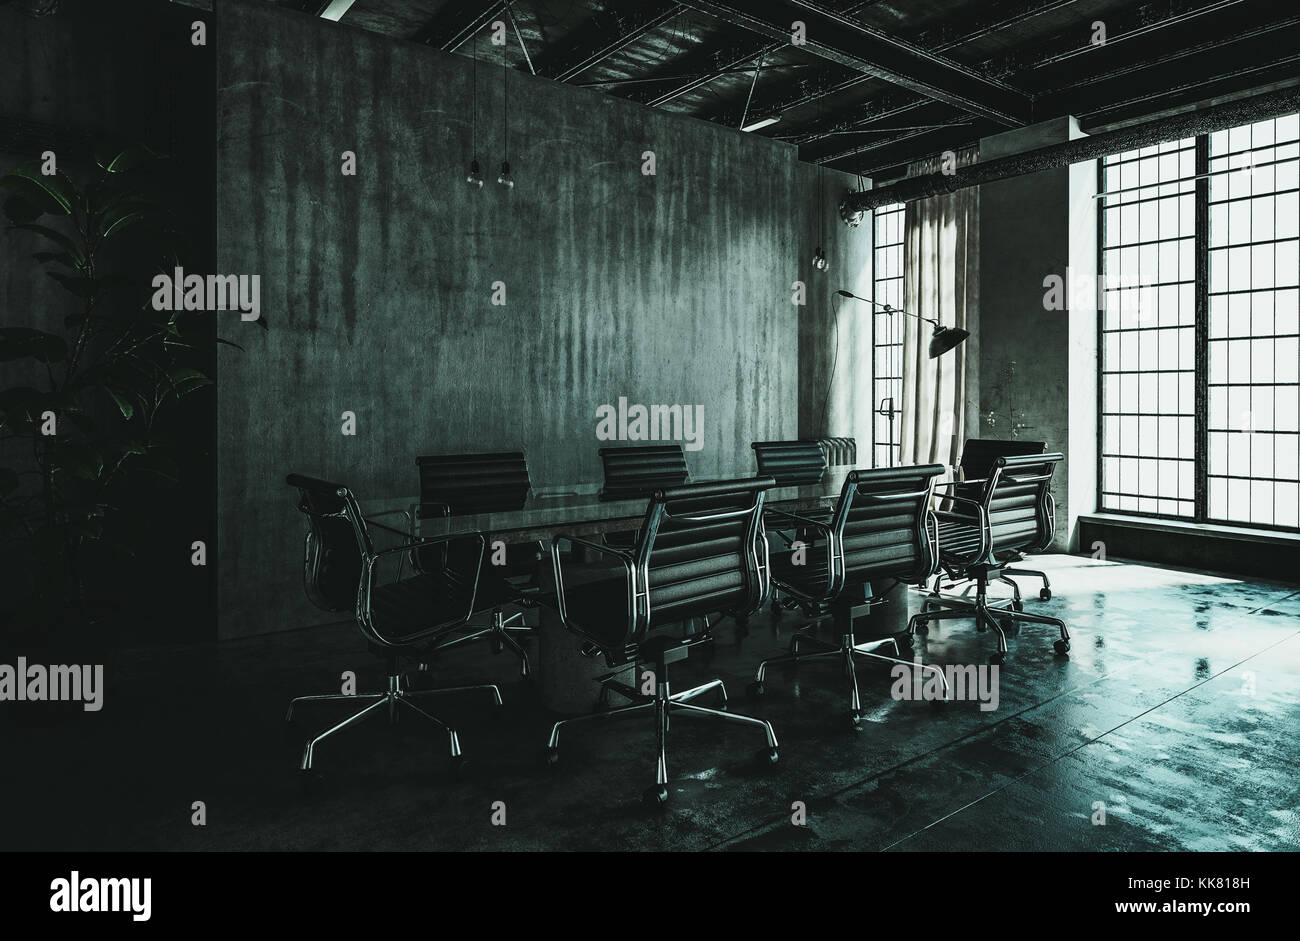 Dark modern industrial loft conversion interior with grungy streaked grey concrete wall, large floor to ceiling Stock Photo